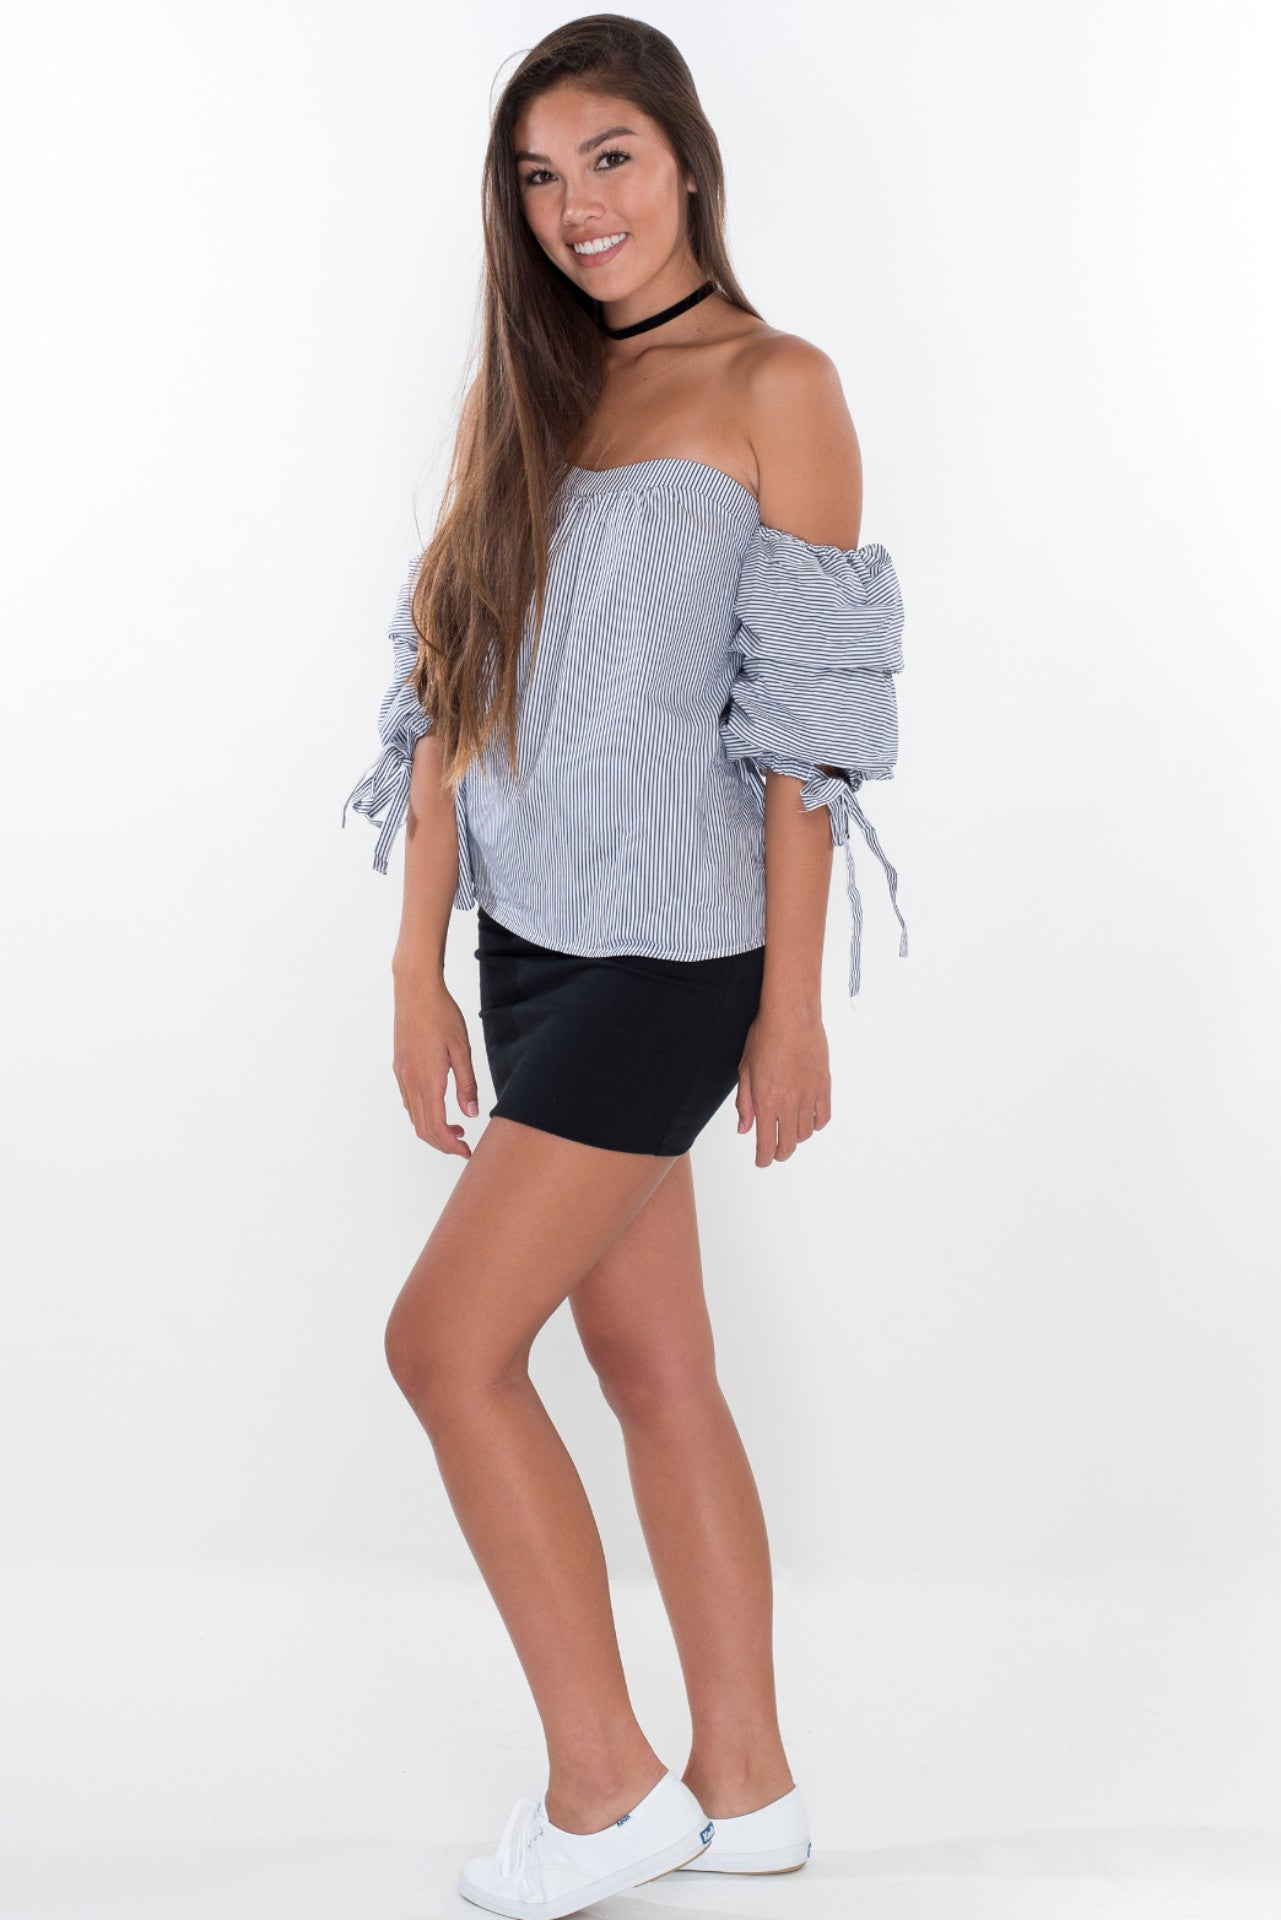 Sweetheart Striped Top - White + Navy